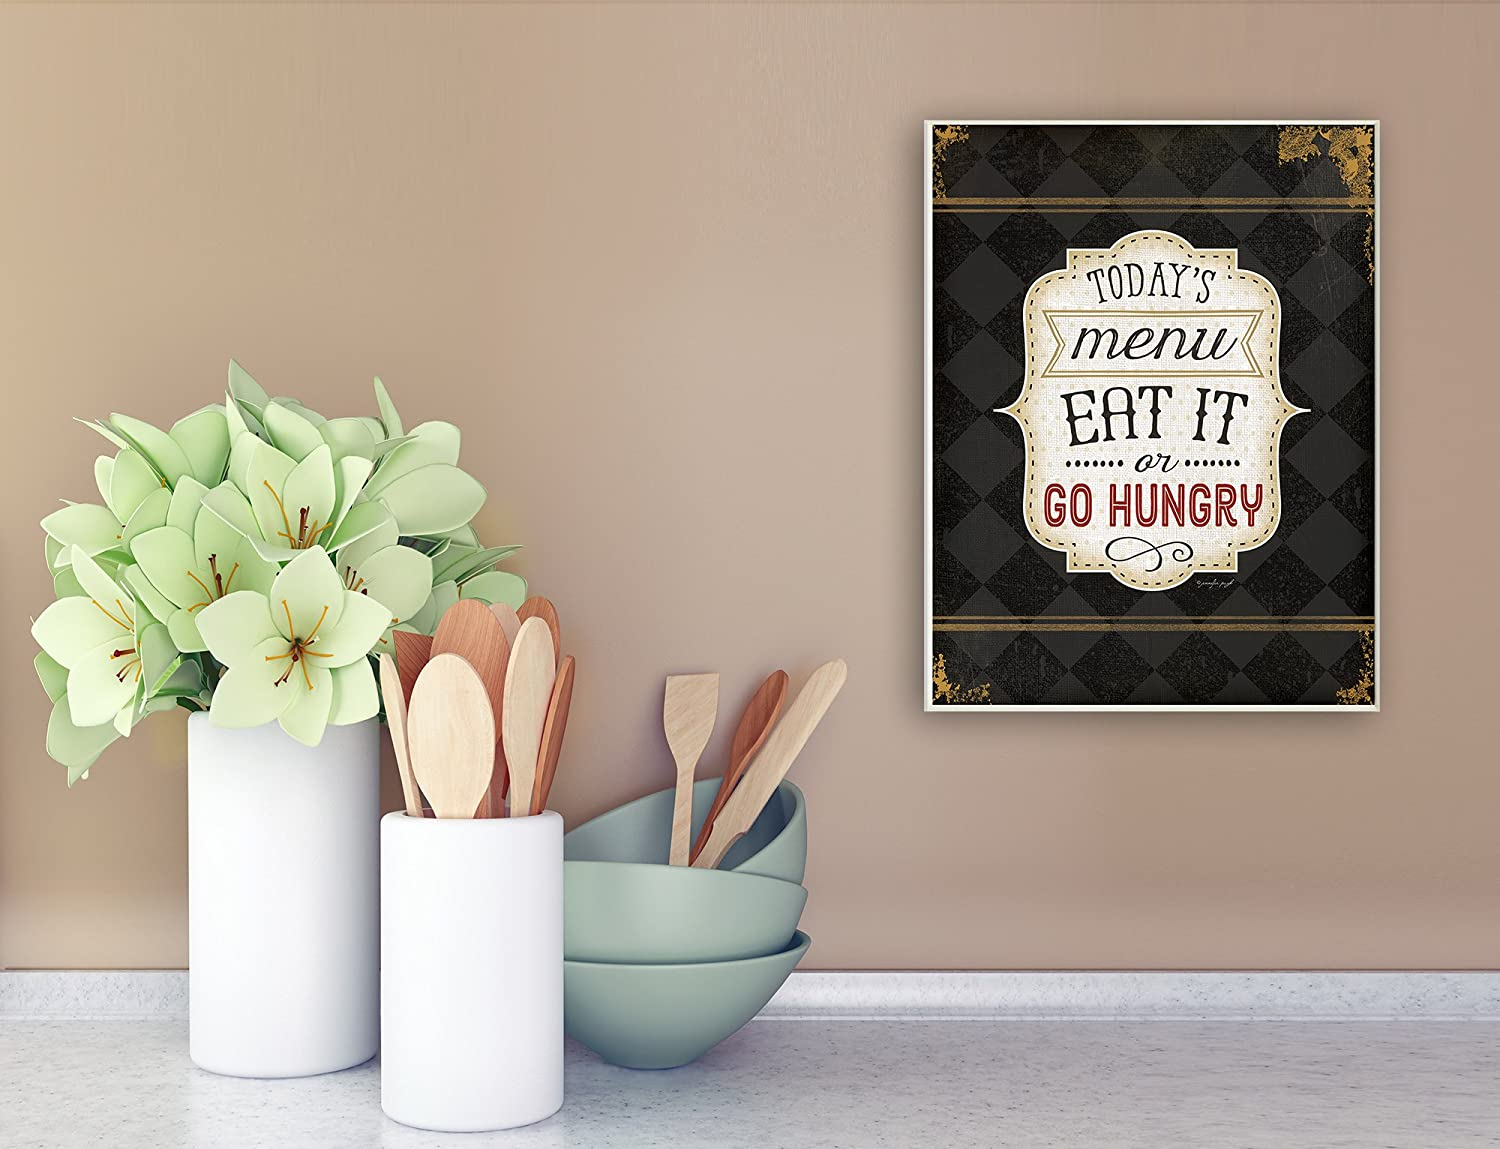 Stupell Home D/écor Todays Menu Eat It Or Go Hungry Graphic Art Wall Plaque Proudly Made in USA 10 x 0.5 x 15